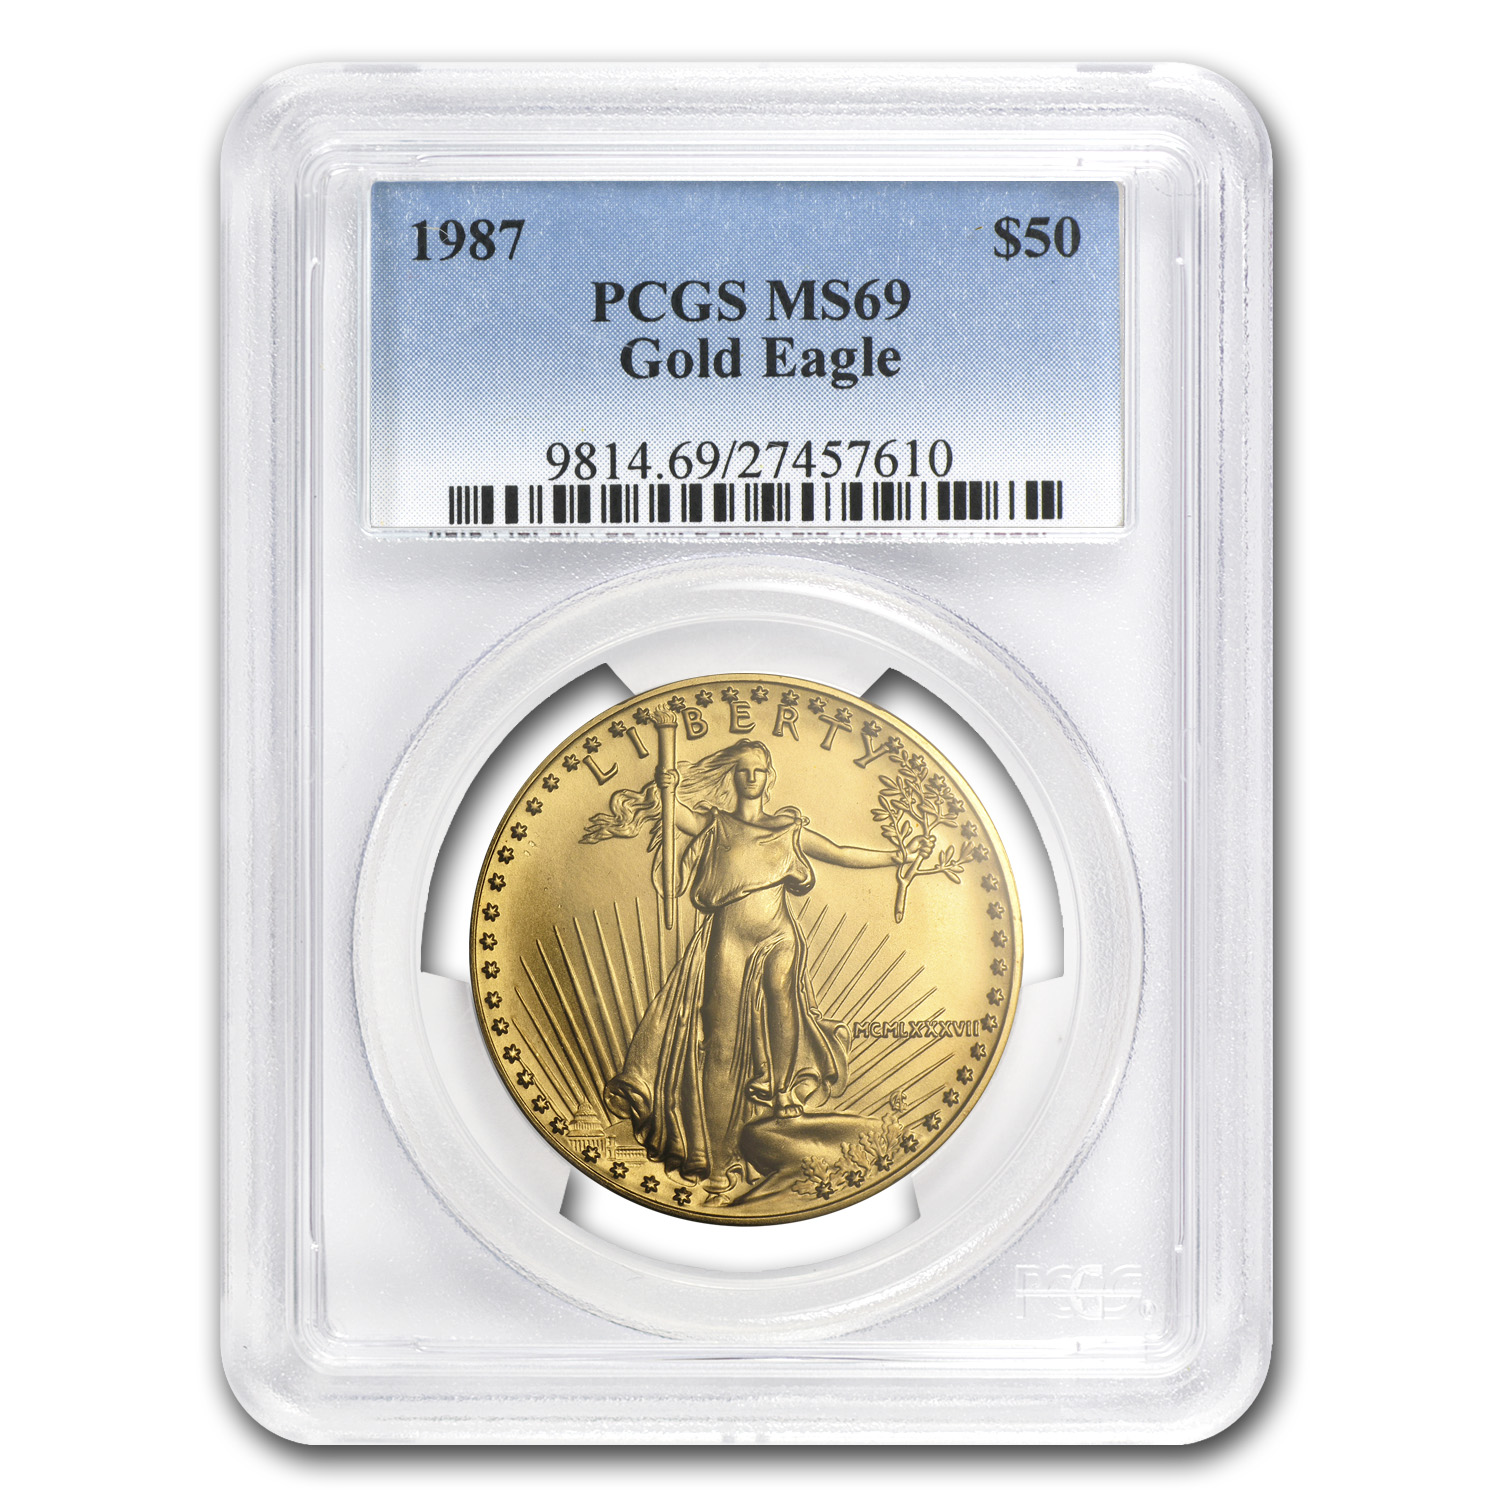 1987 1 oz Gold American Eagle MS-69 PCGS